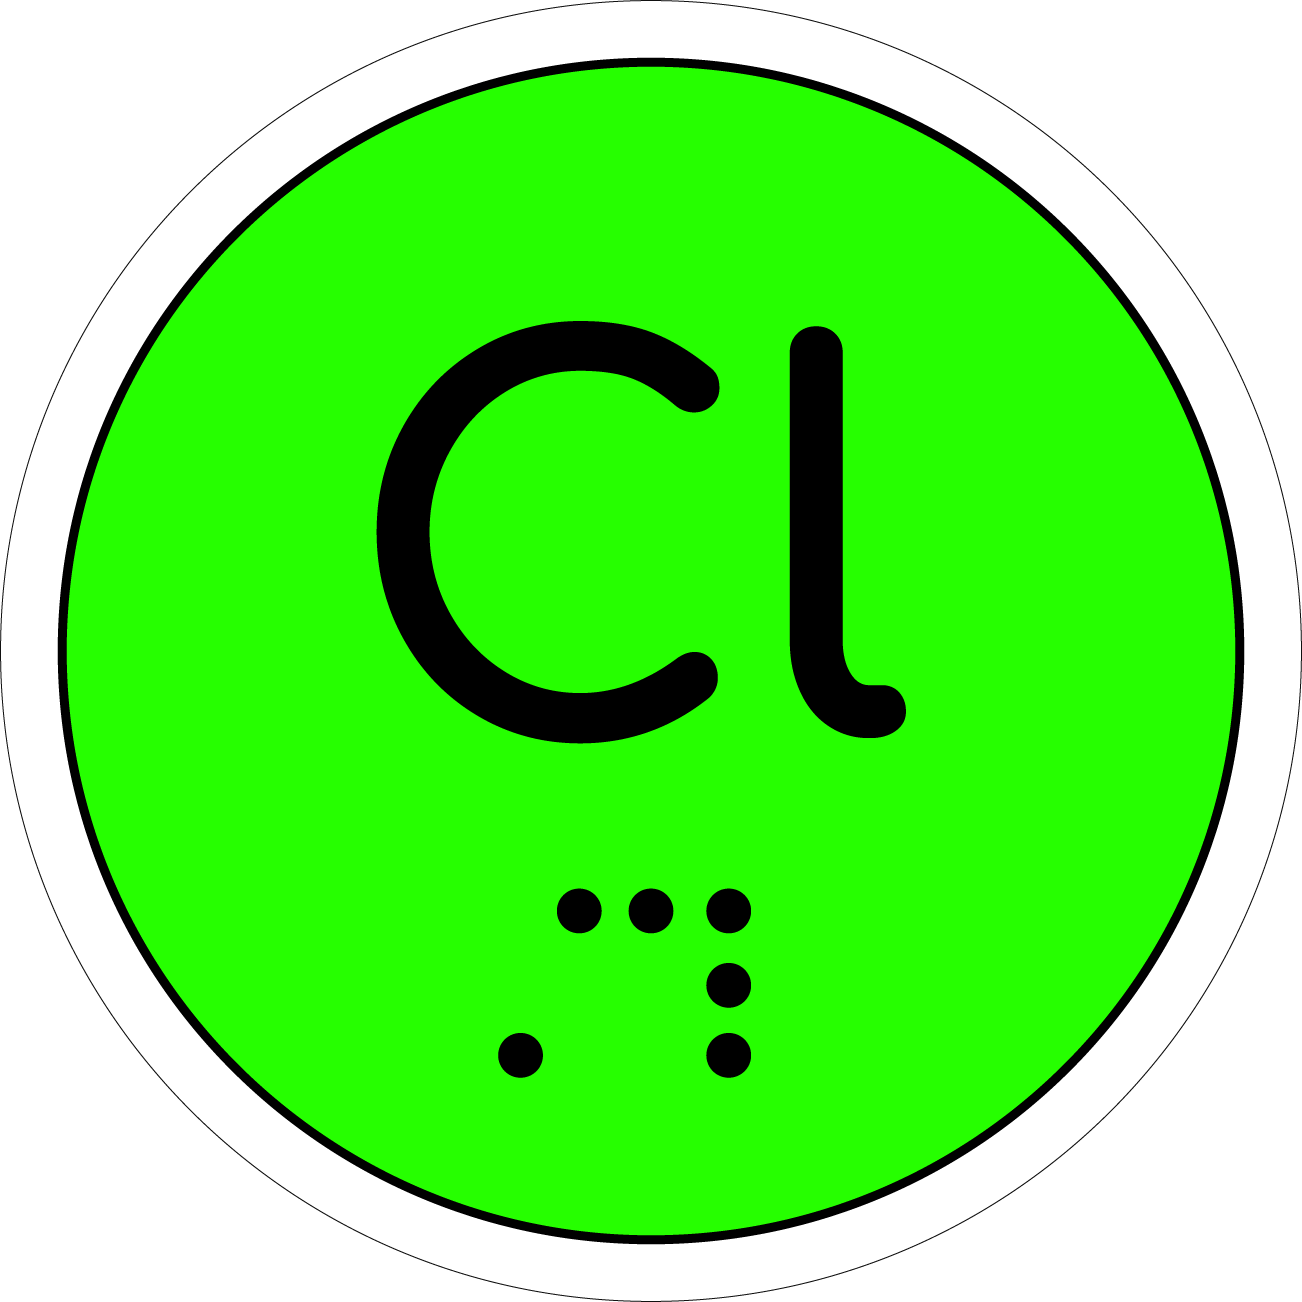 image of lone pairs, a small piece with two extruded dots to indicate the long pairs. The base of the piece has one rounded side and another curved side that fits into the atom pieces.